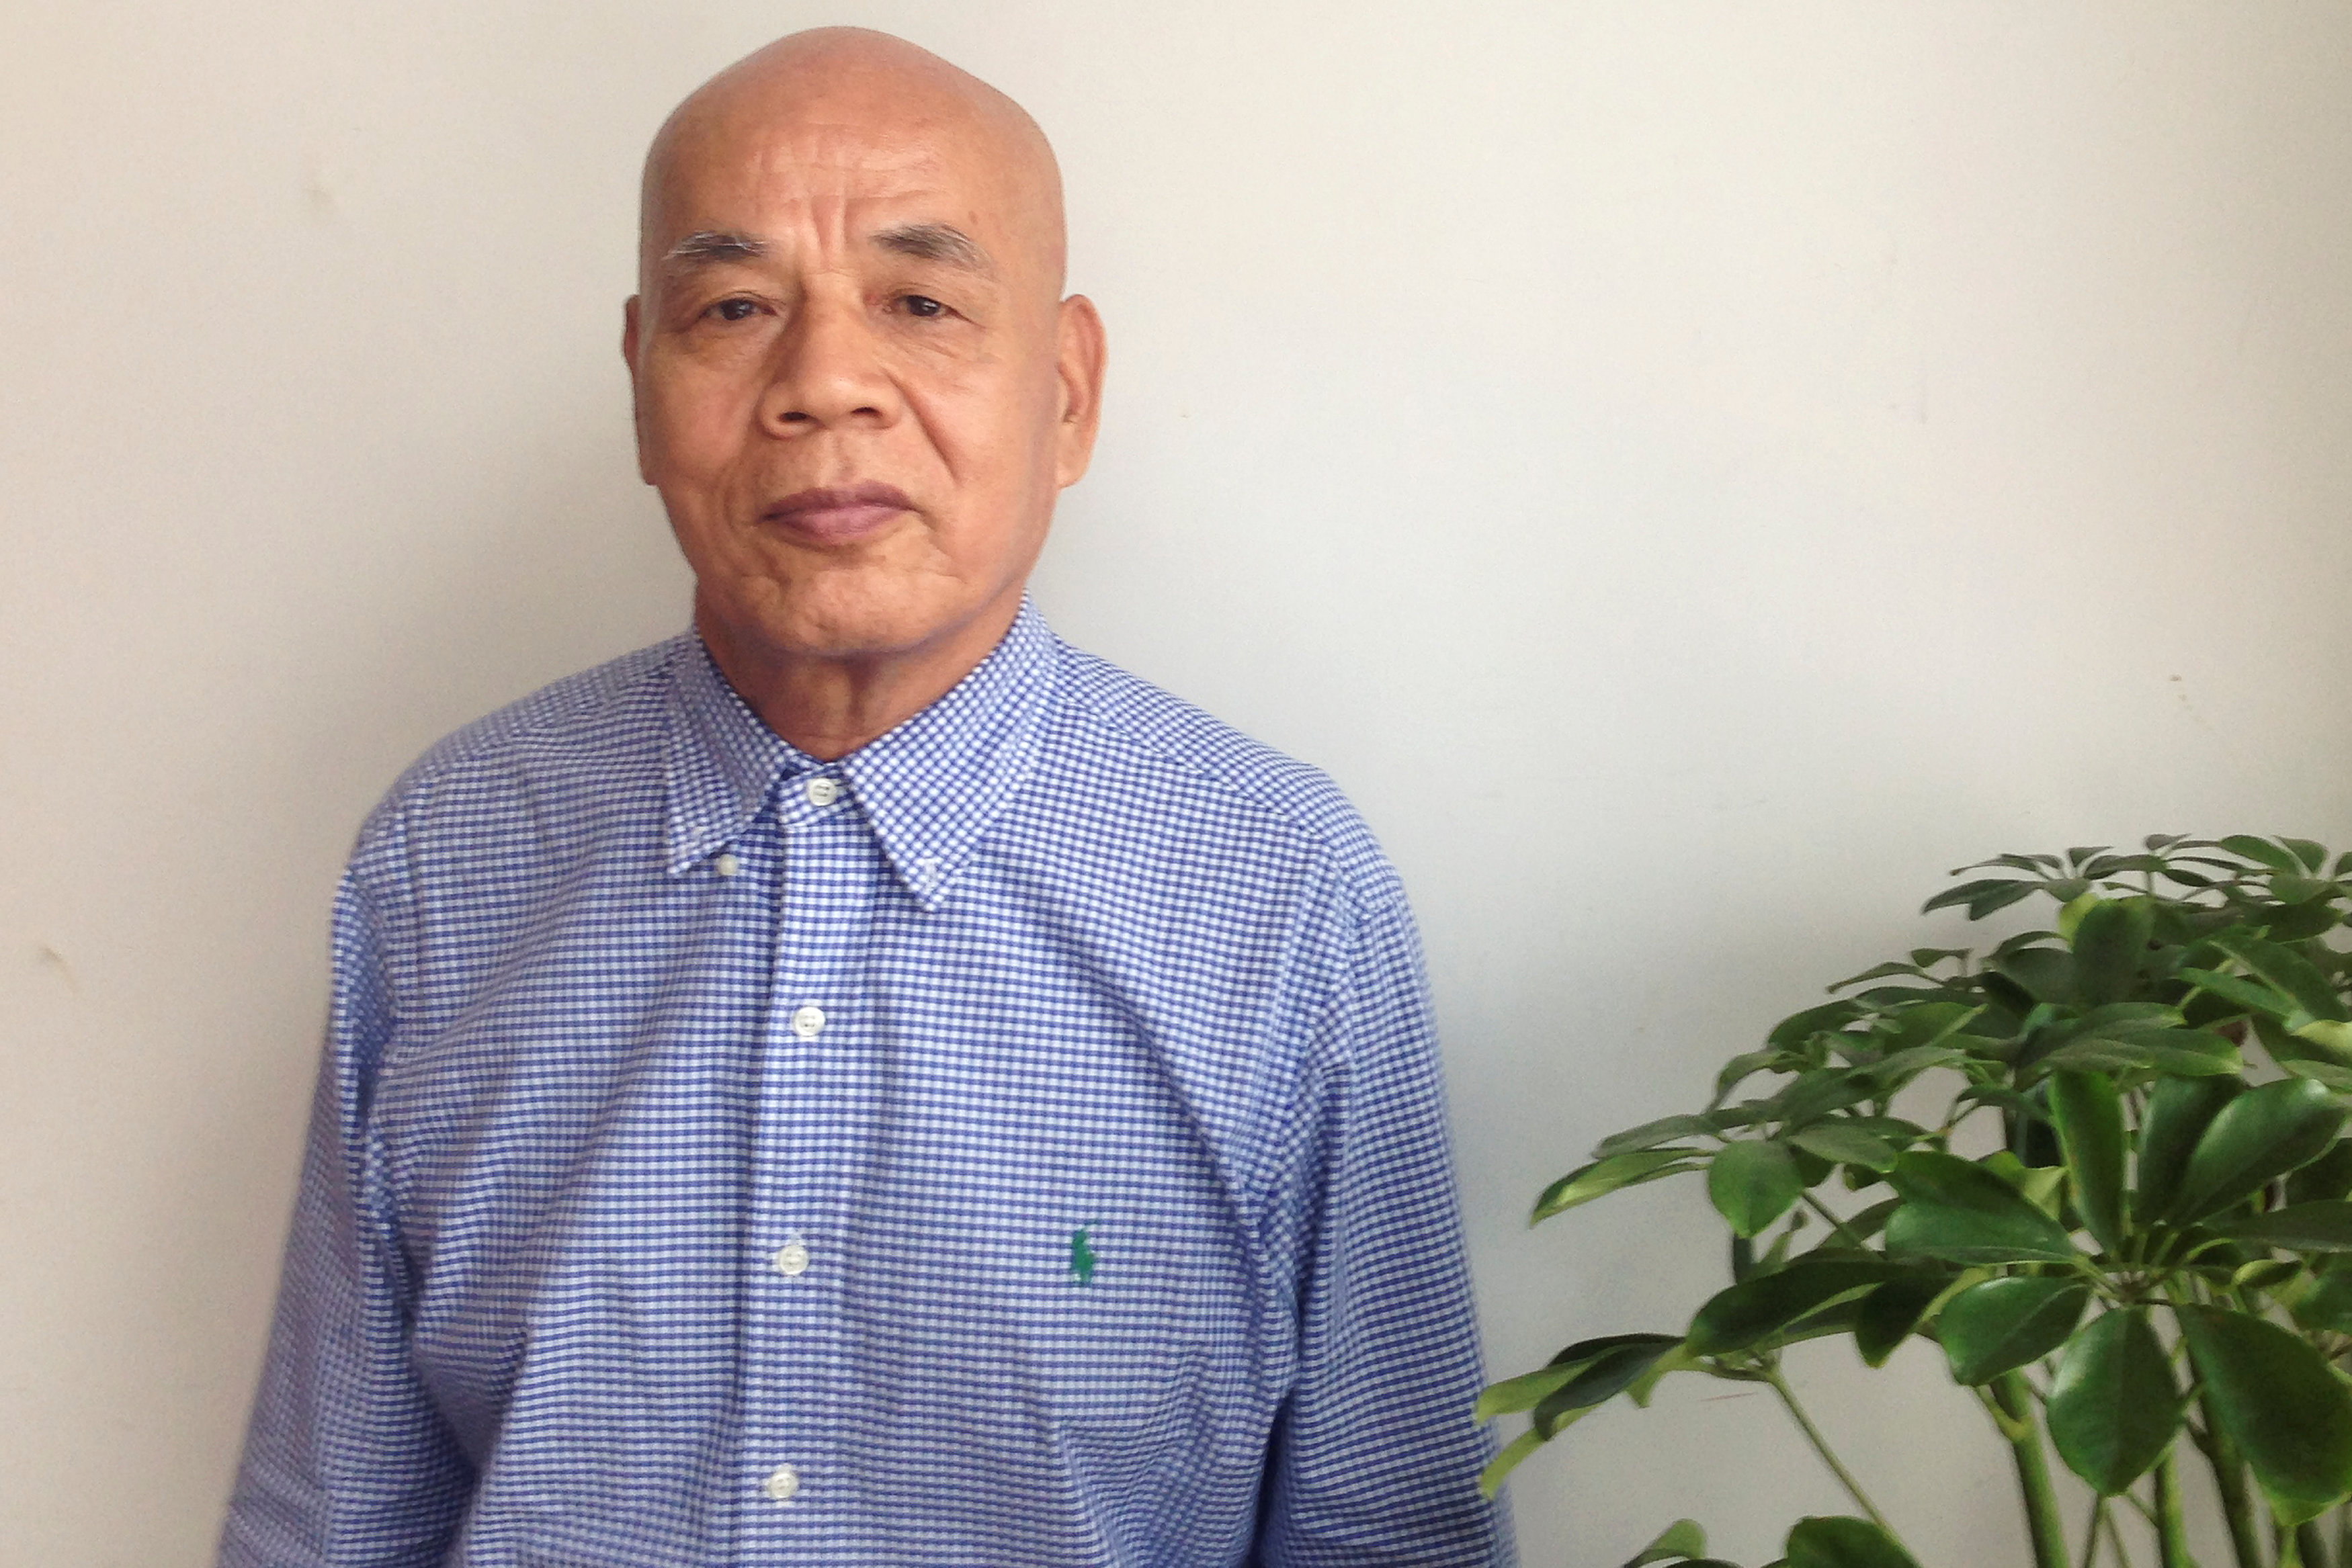 In 2015, China crushed rights lawyers but activists are still organising